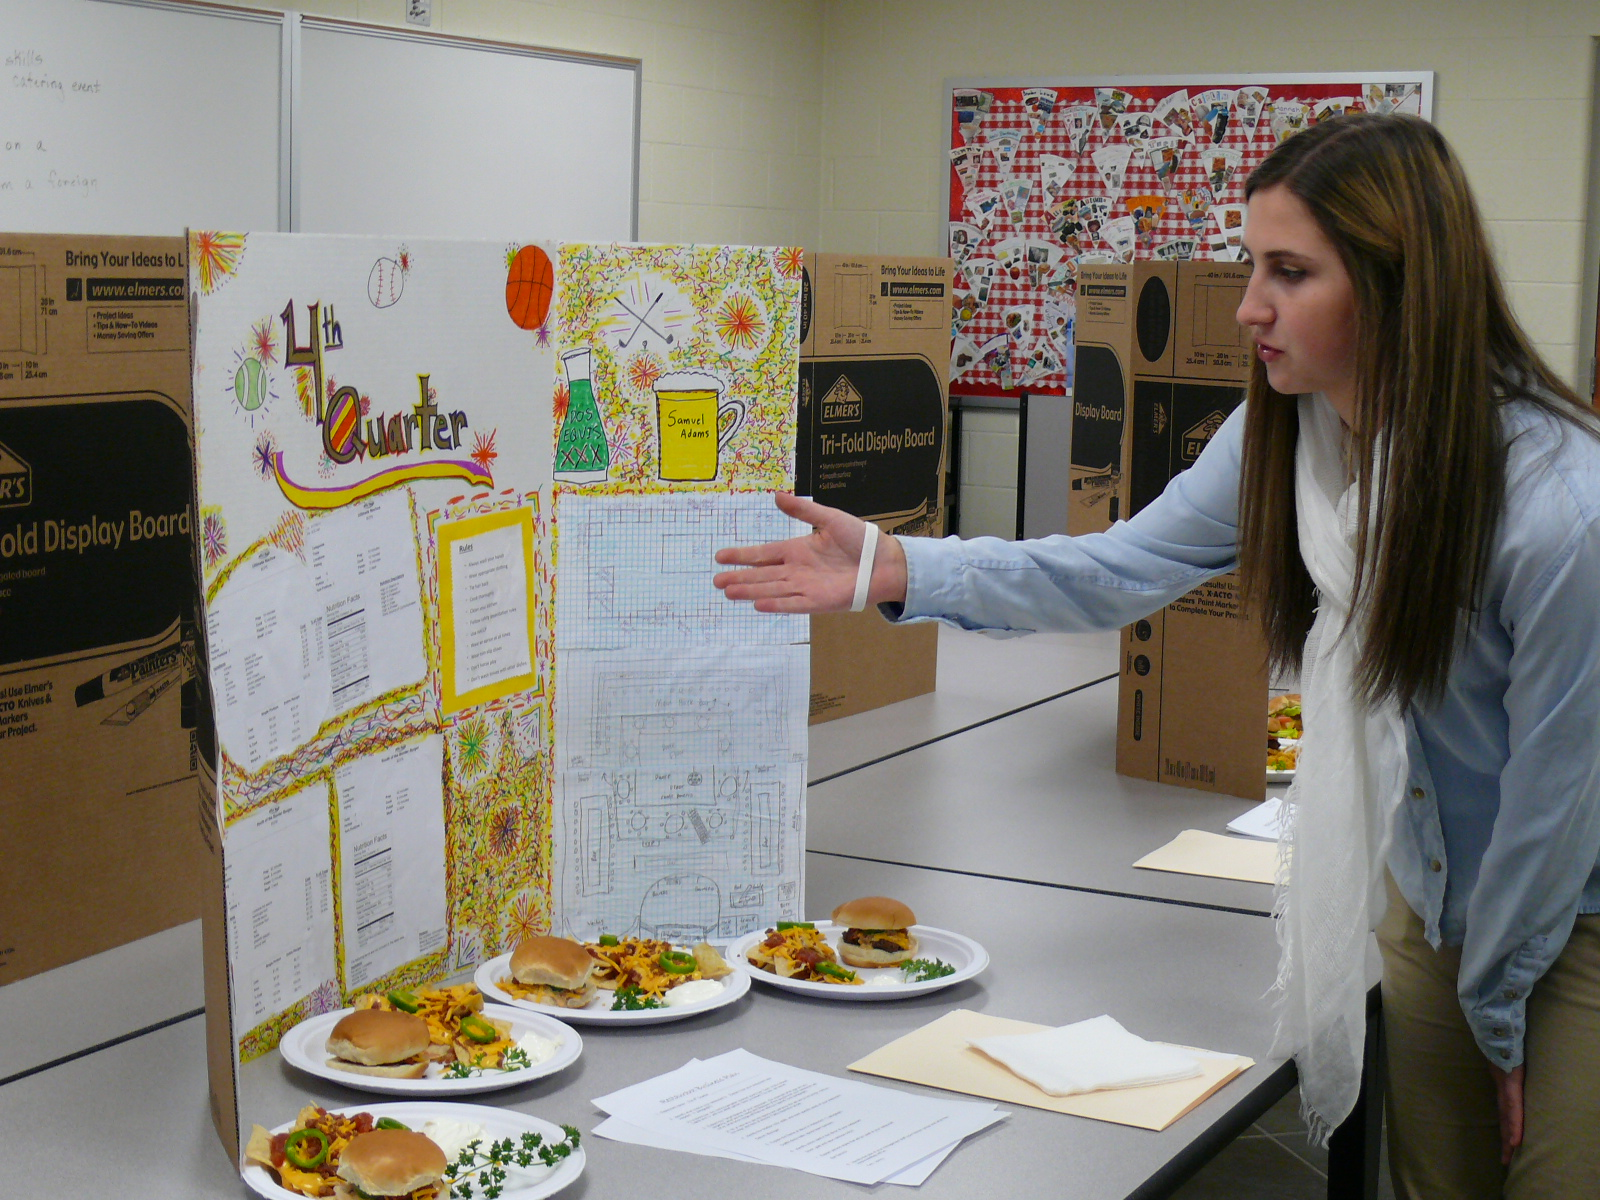 A high school student demonstrates her culinary project.